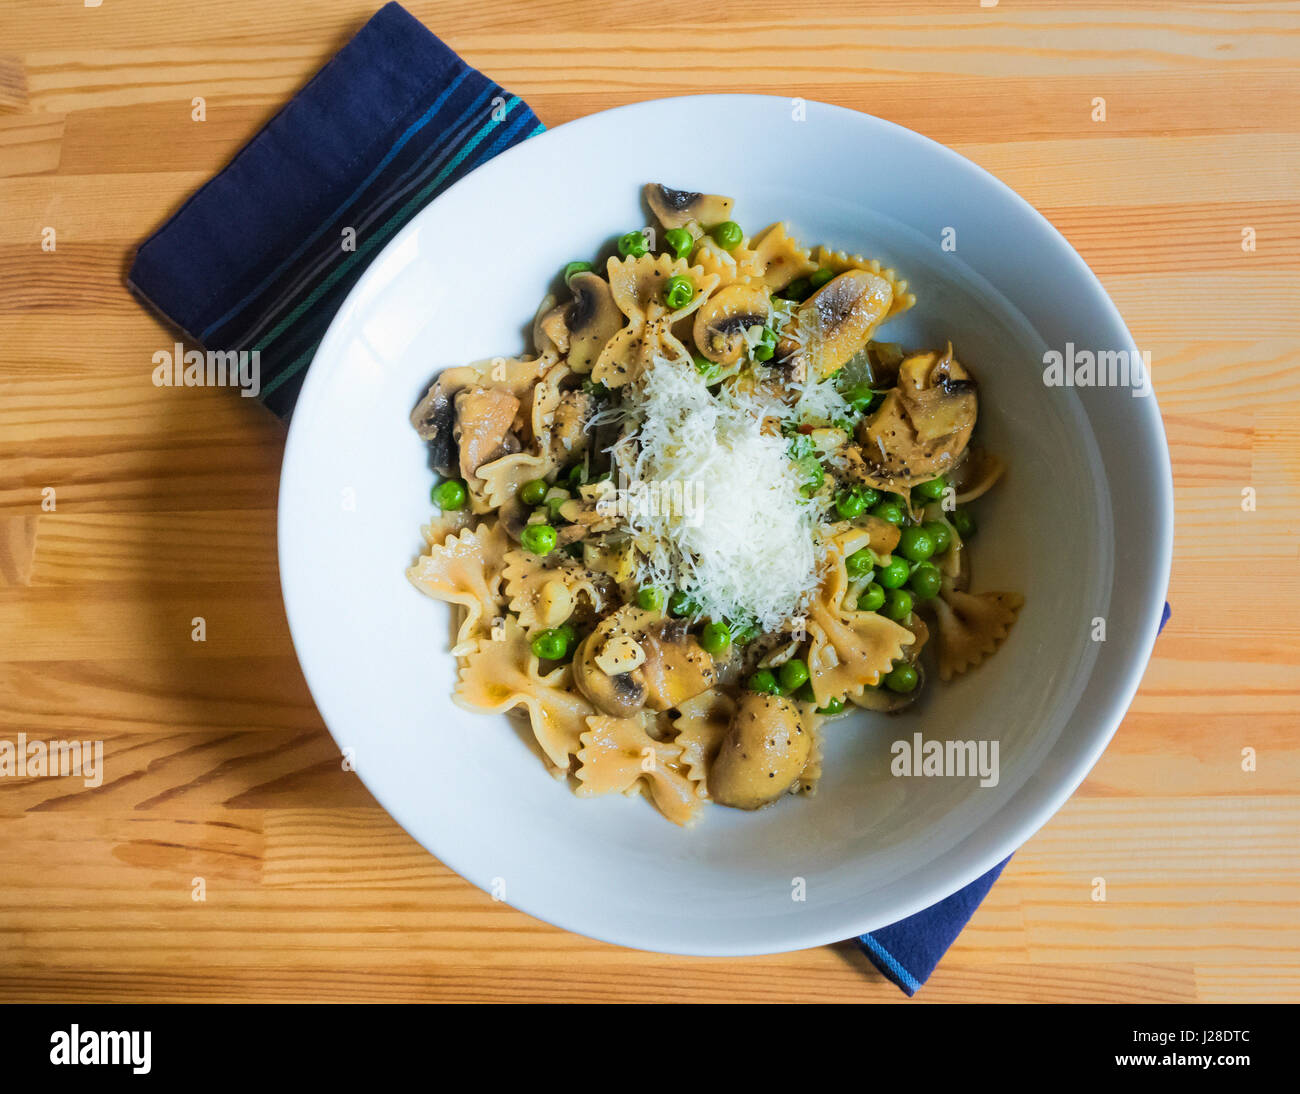 Bow tie pasta, with mushrooms, green peas and cheese in a white bowl - Stock Image